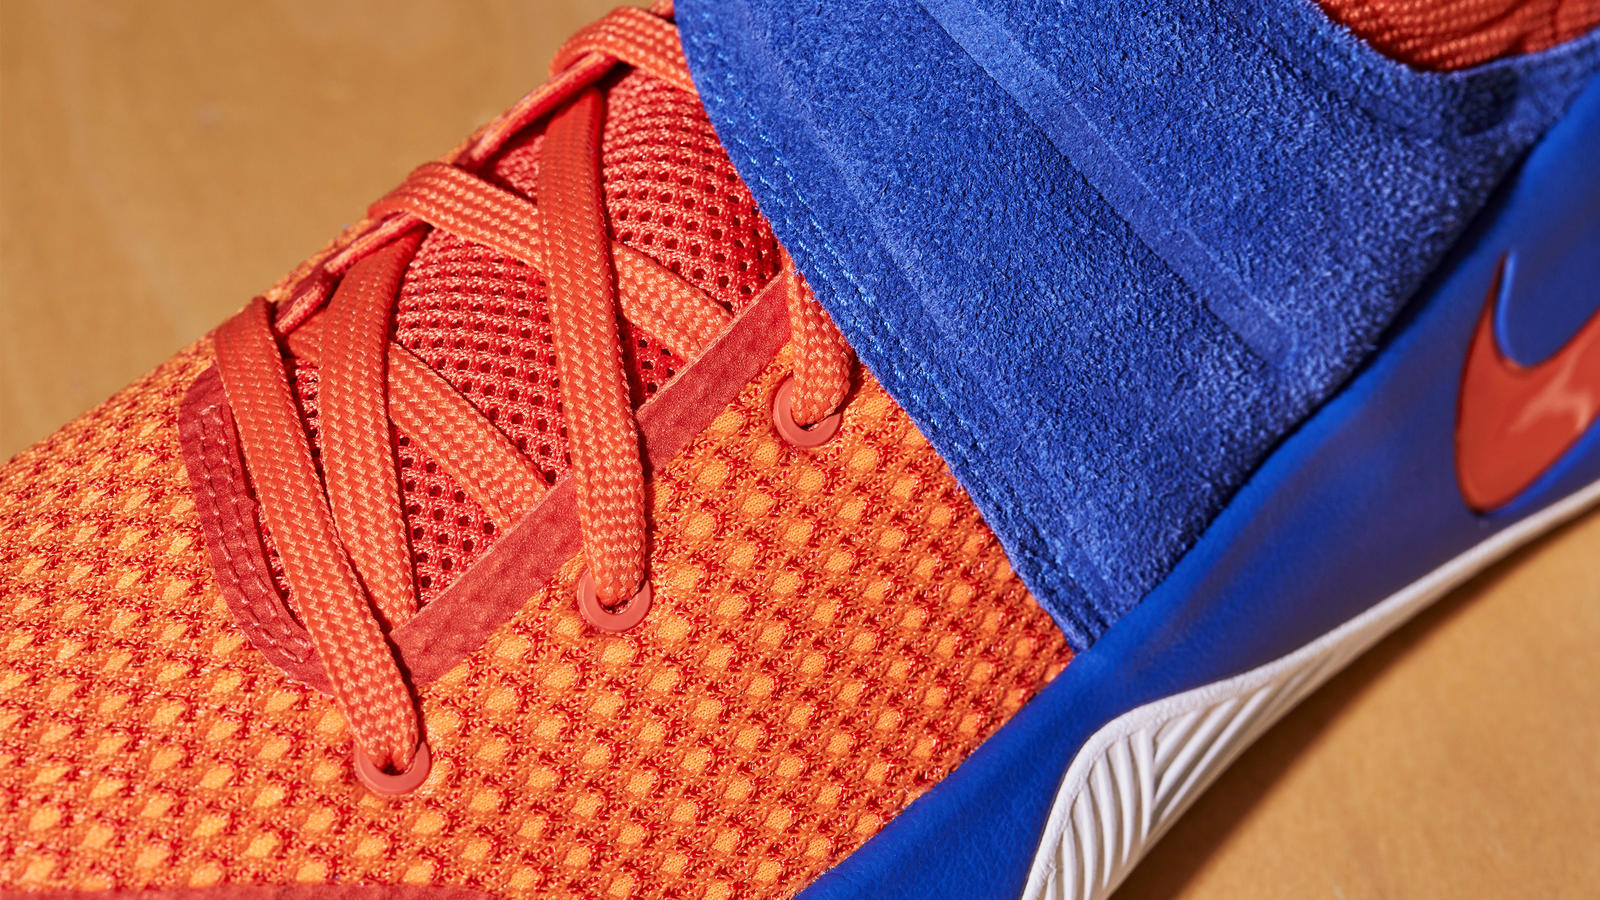 best service 813d4 181d4 Image via Nike Nike Kyrie 2 Hardwood Classic Detail